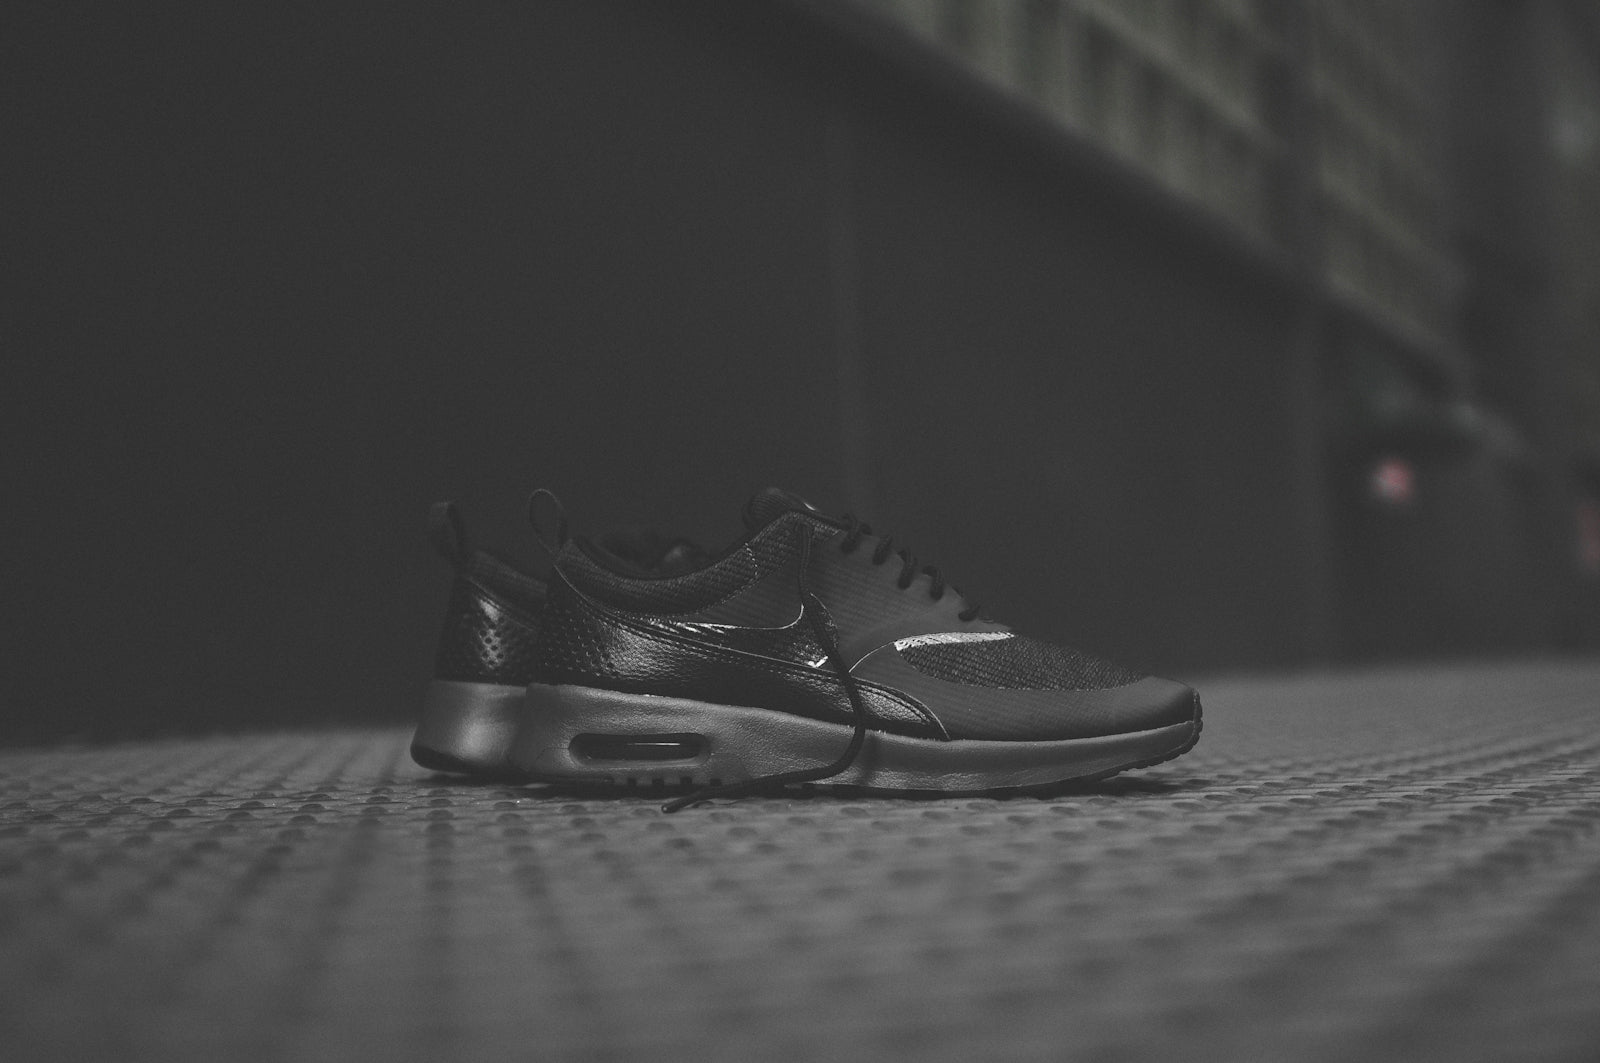 promo code 99013 bdef0 The Nike WMNS Air Max Thea PRM - Triple Black is available now for email  order at Kith Manhattan and Kith Brooklyn.